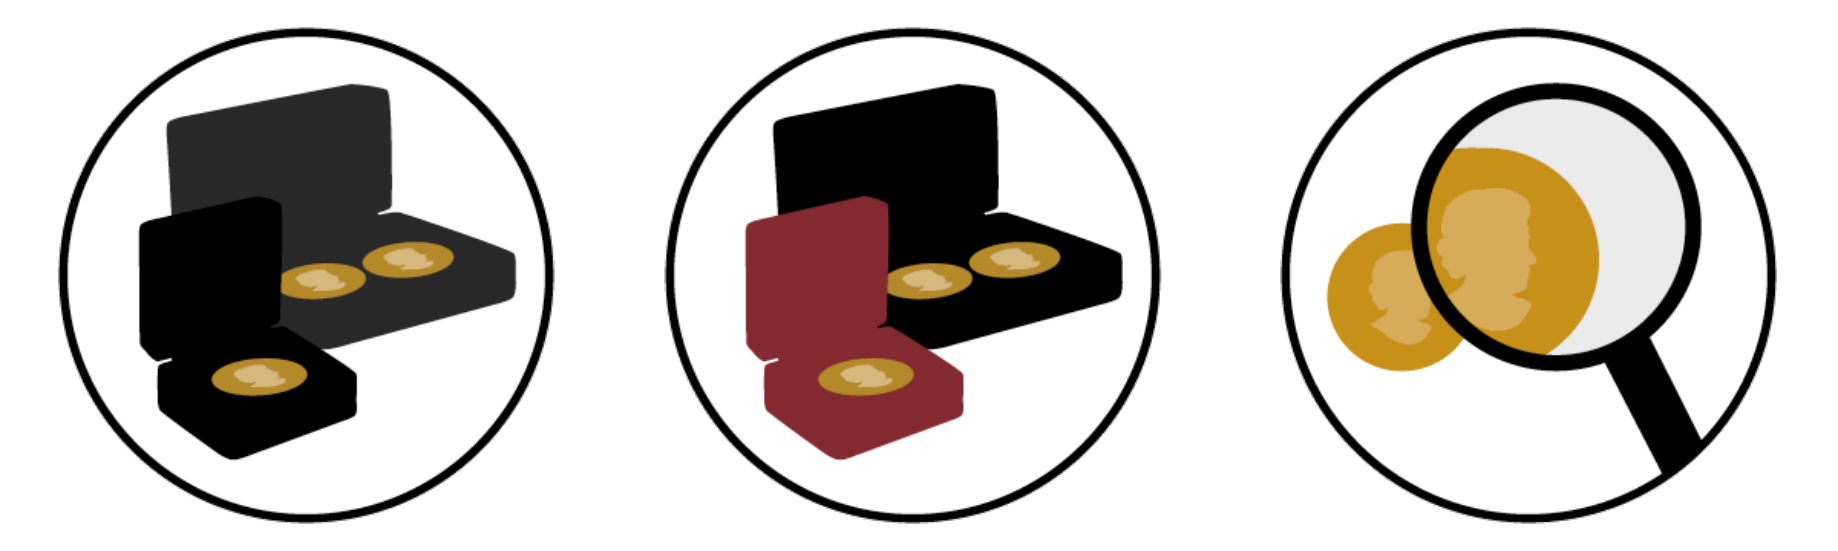 Coins clipart simple interest. Thinking of becoming a